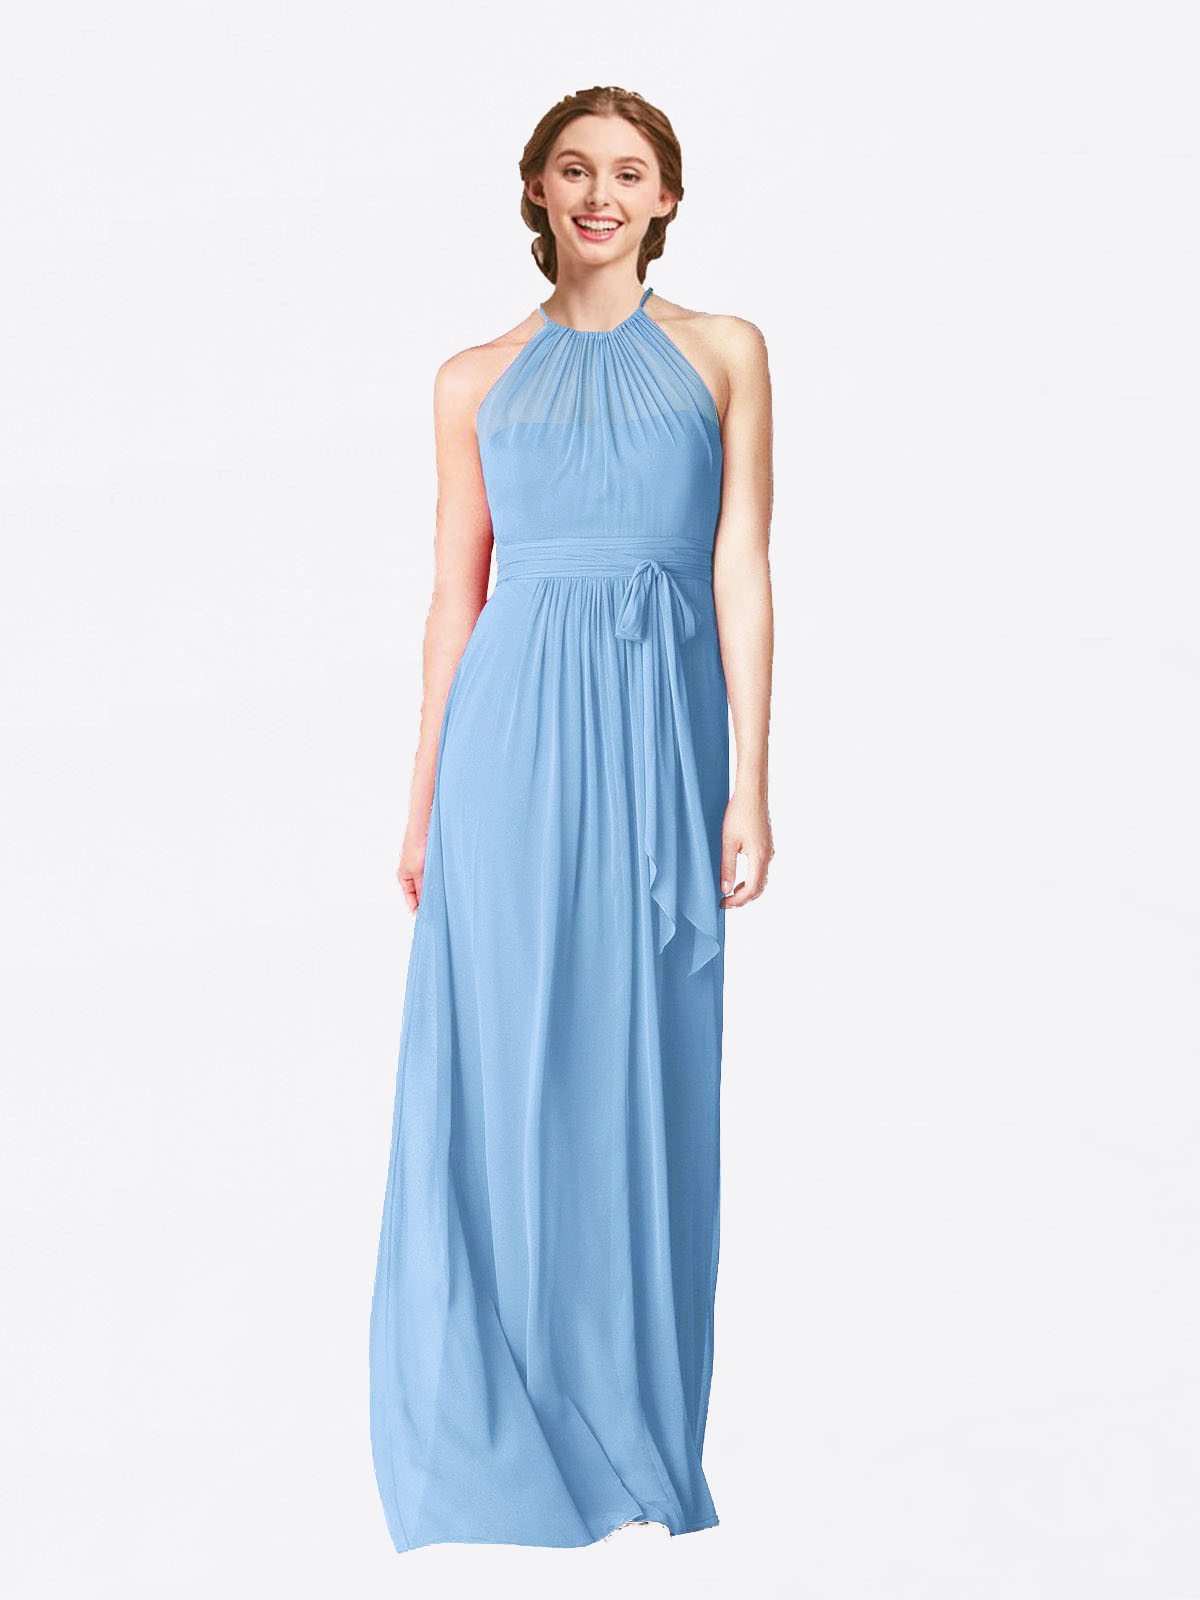 Long A-Line Halter Sleeveless Periwinkle Chiffon Bridesmaid Dress Laura